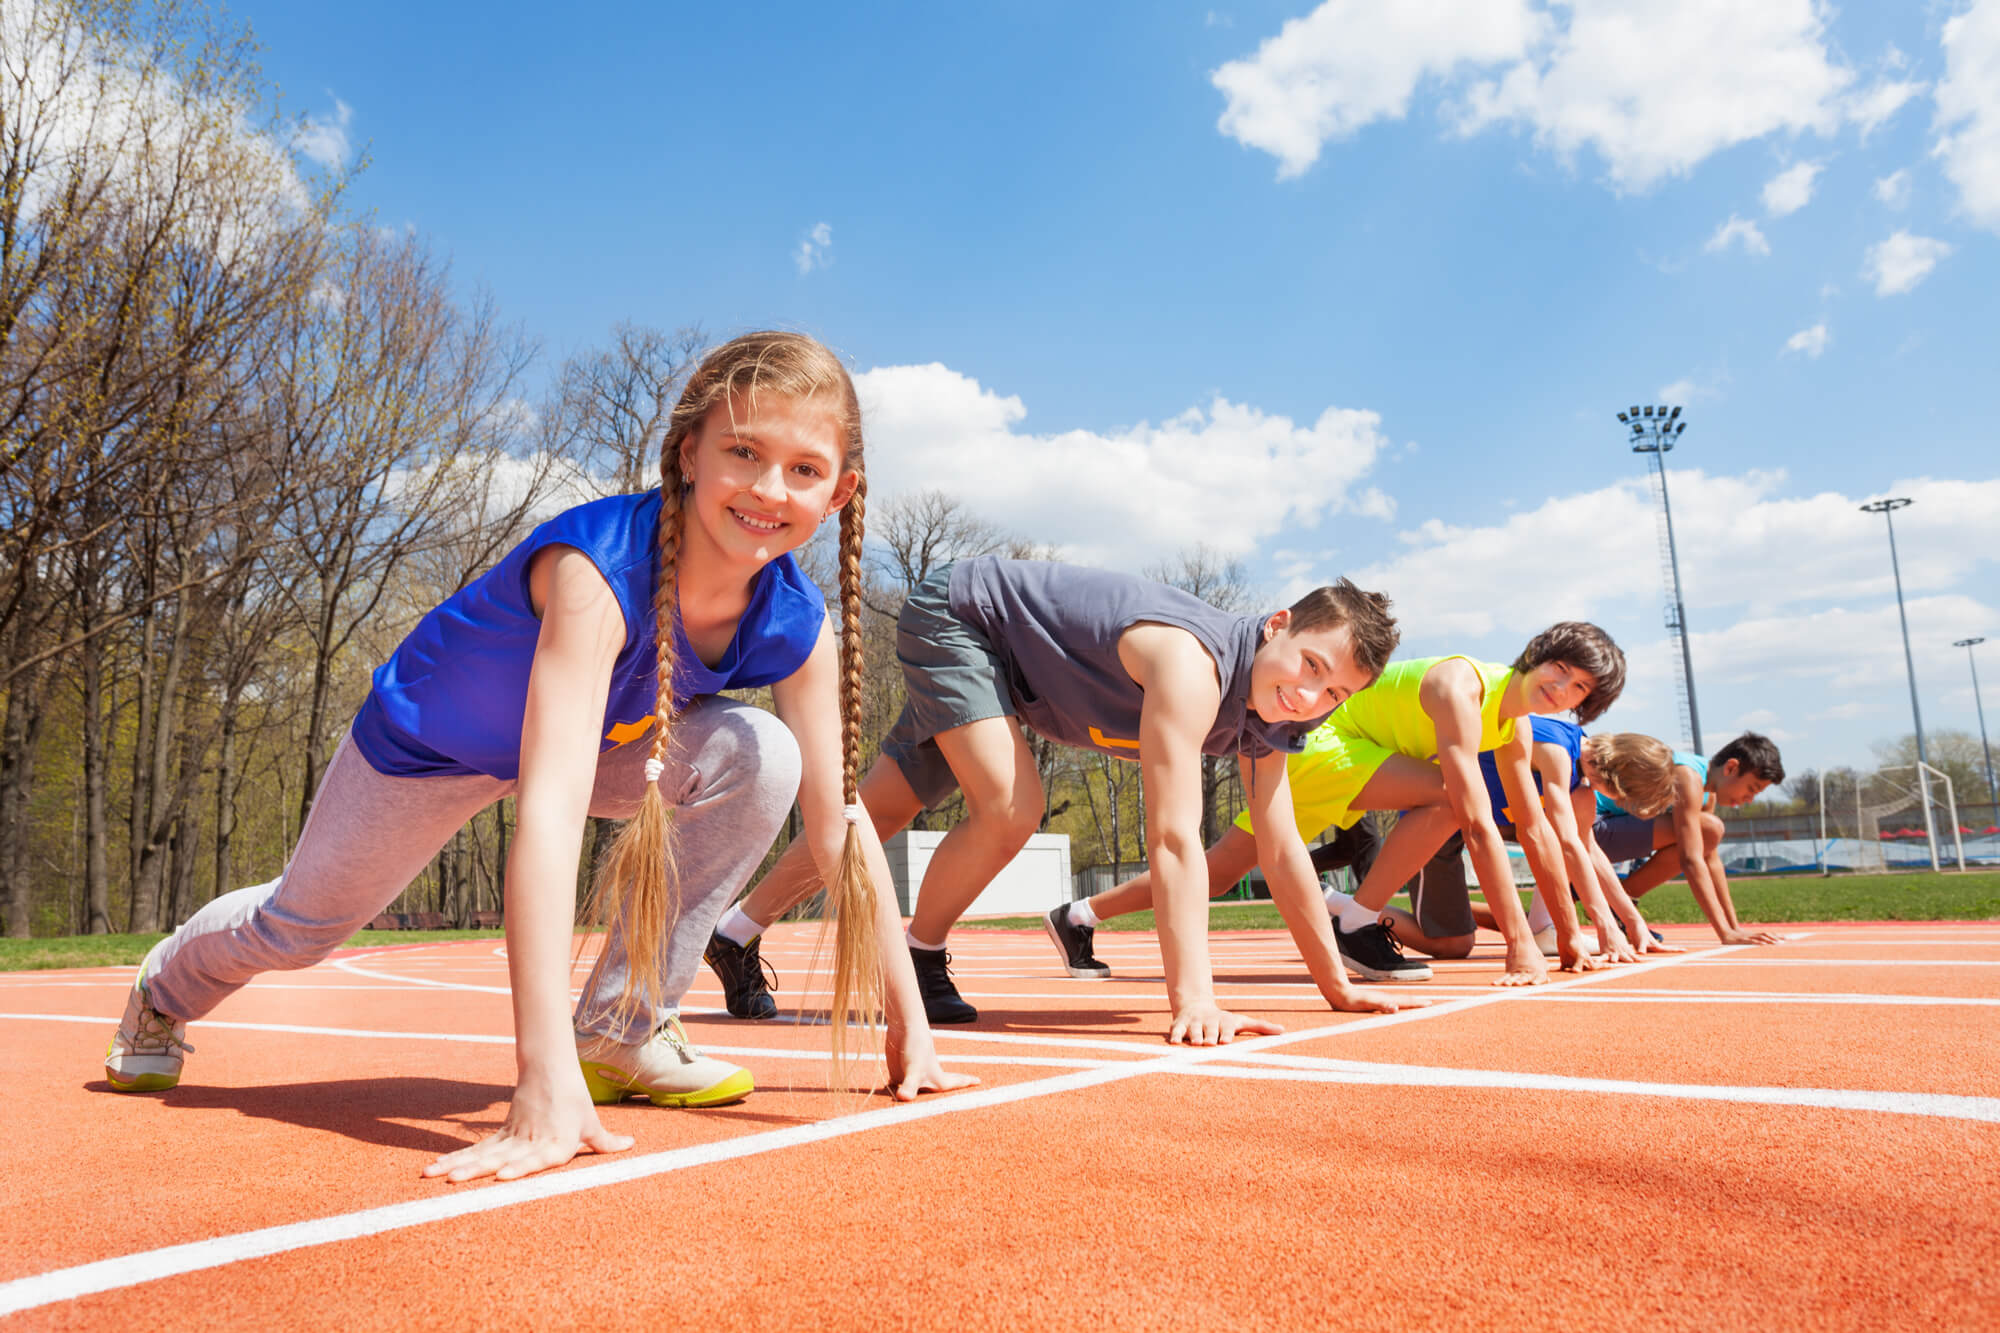 CSM_image-weekend_enfants-alignes-courses-athletisme BD